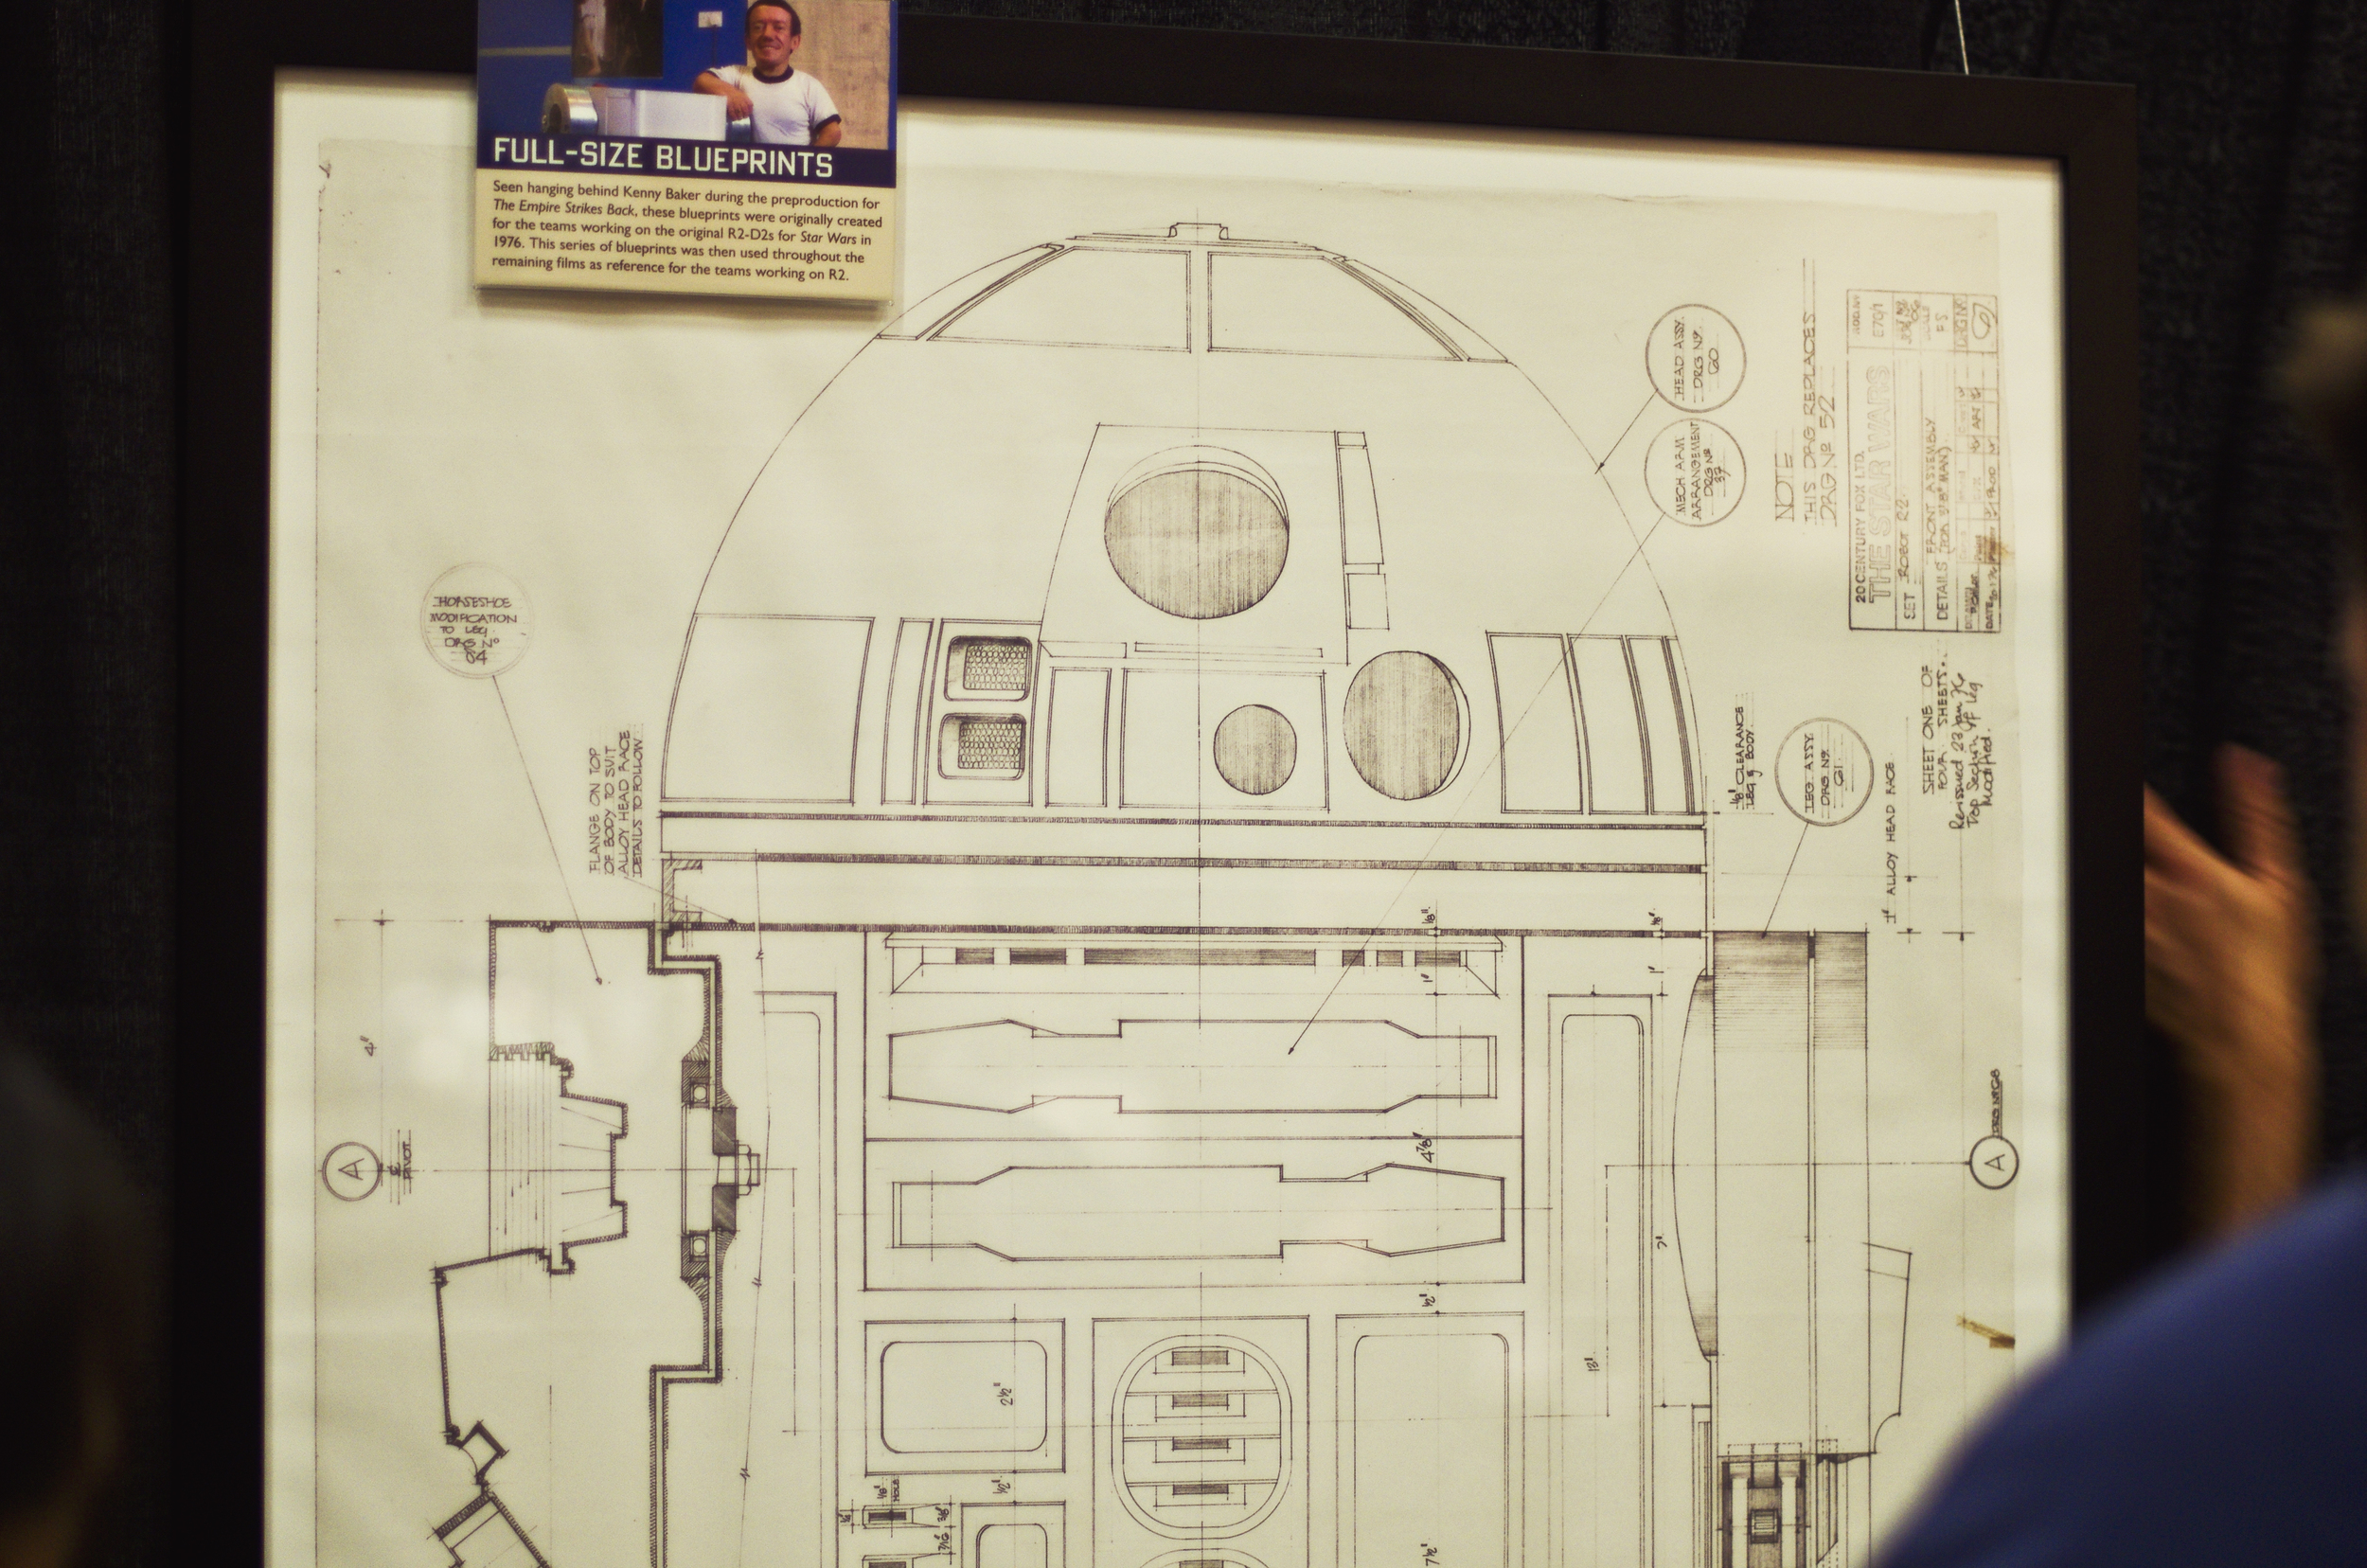 We took a picture of the plans. Our custom R2-5D will be ready for the next convention.